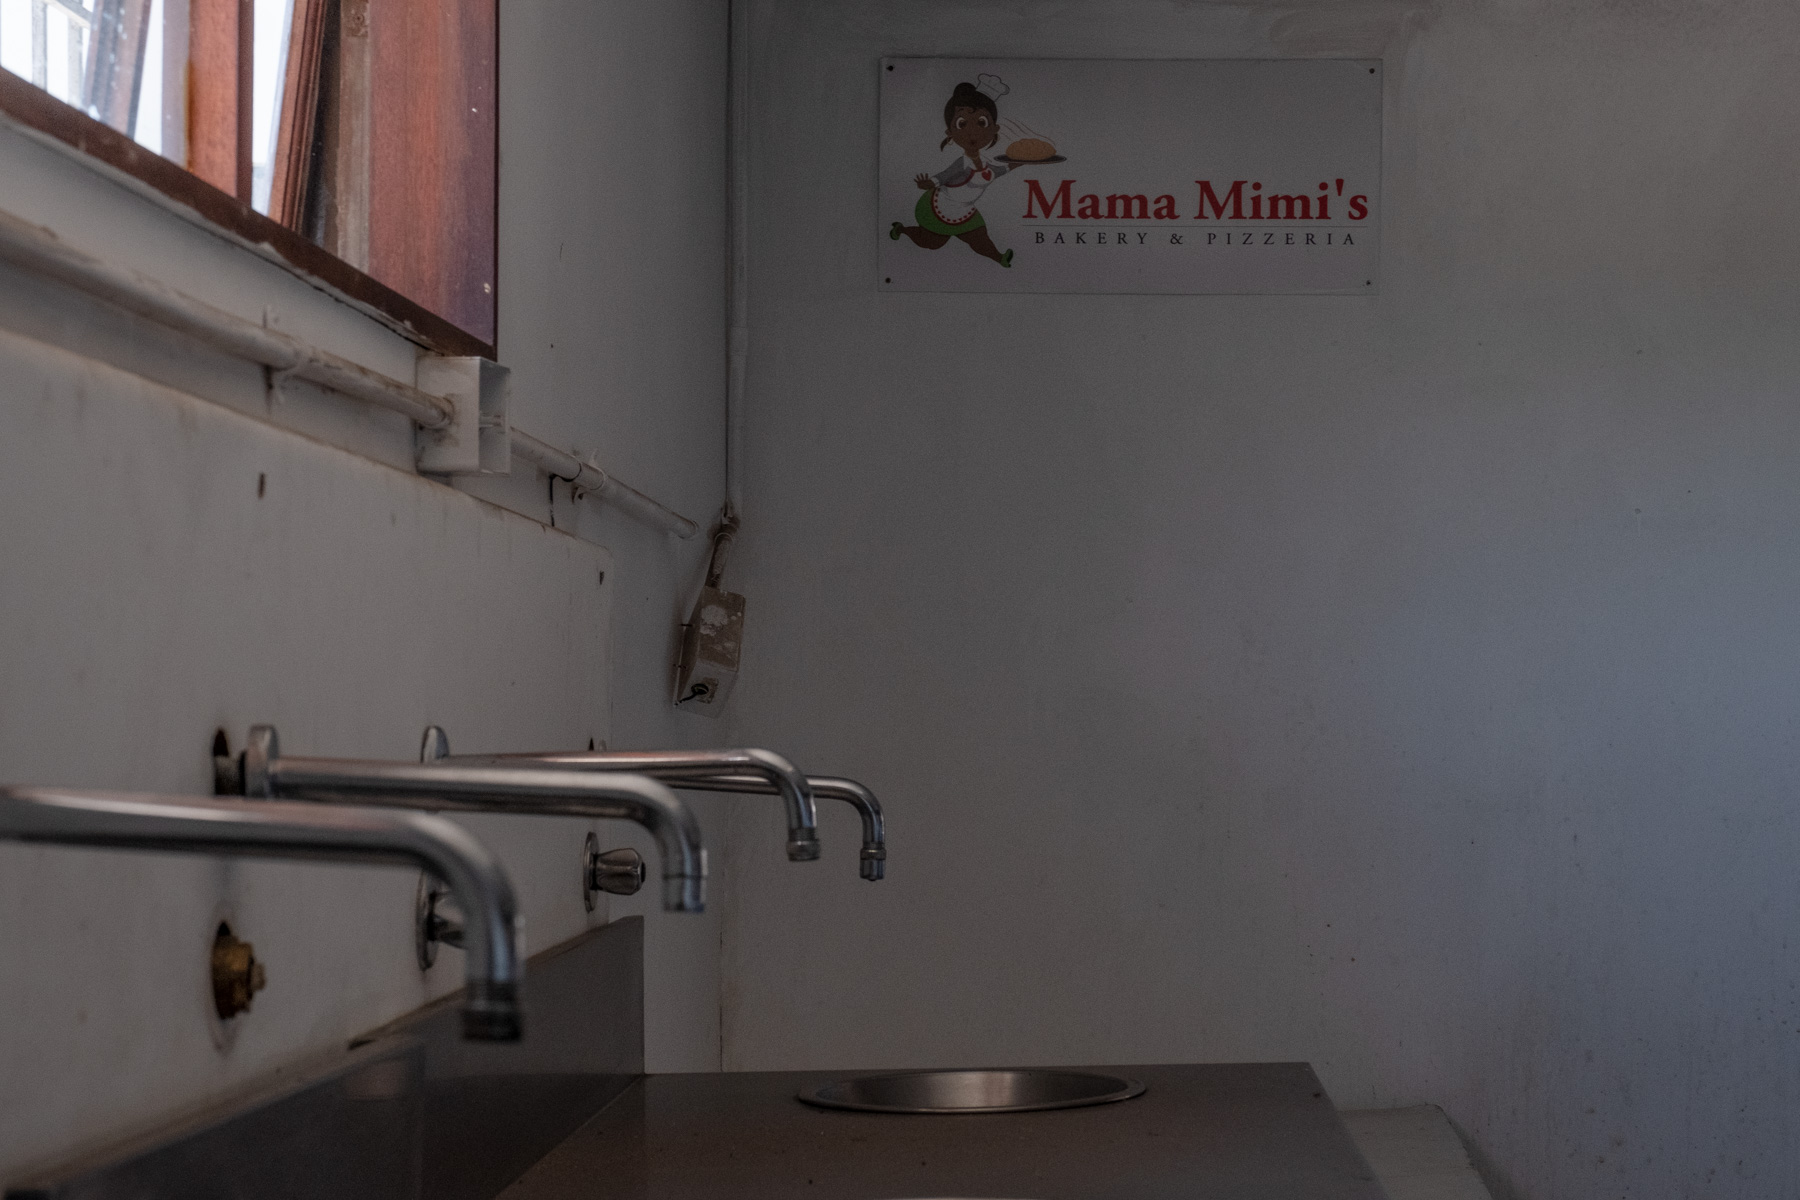 20 May 2020: Because of social distancing regulations, the Eziko cooking school reopened with 13 rather than its planned minimum of 20 students, reducing its fee-based income.